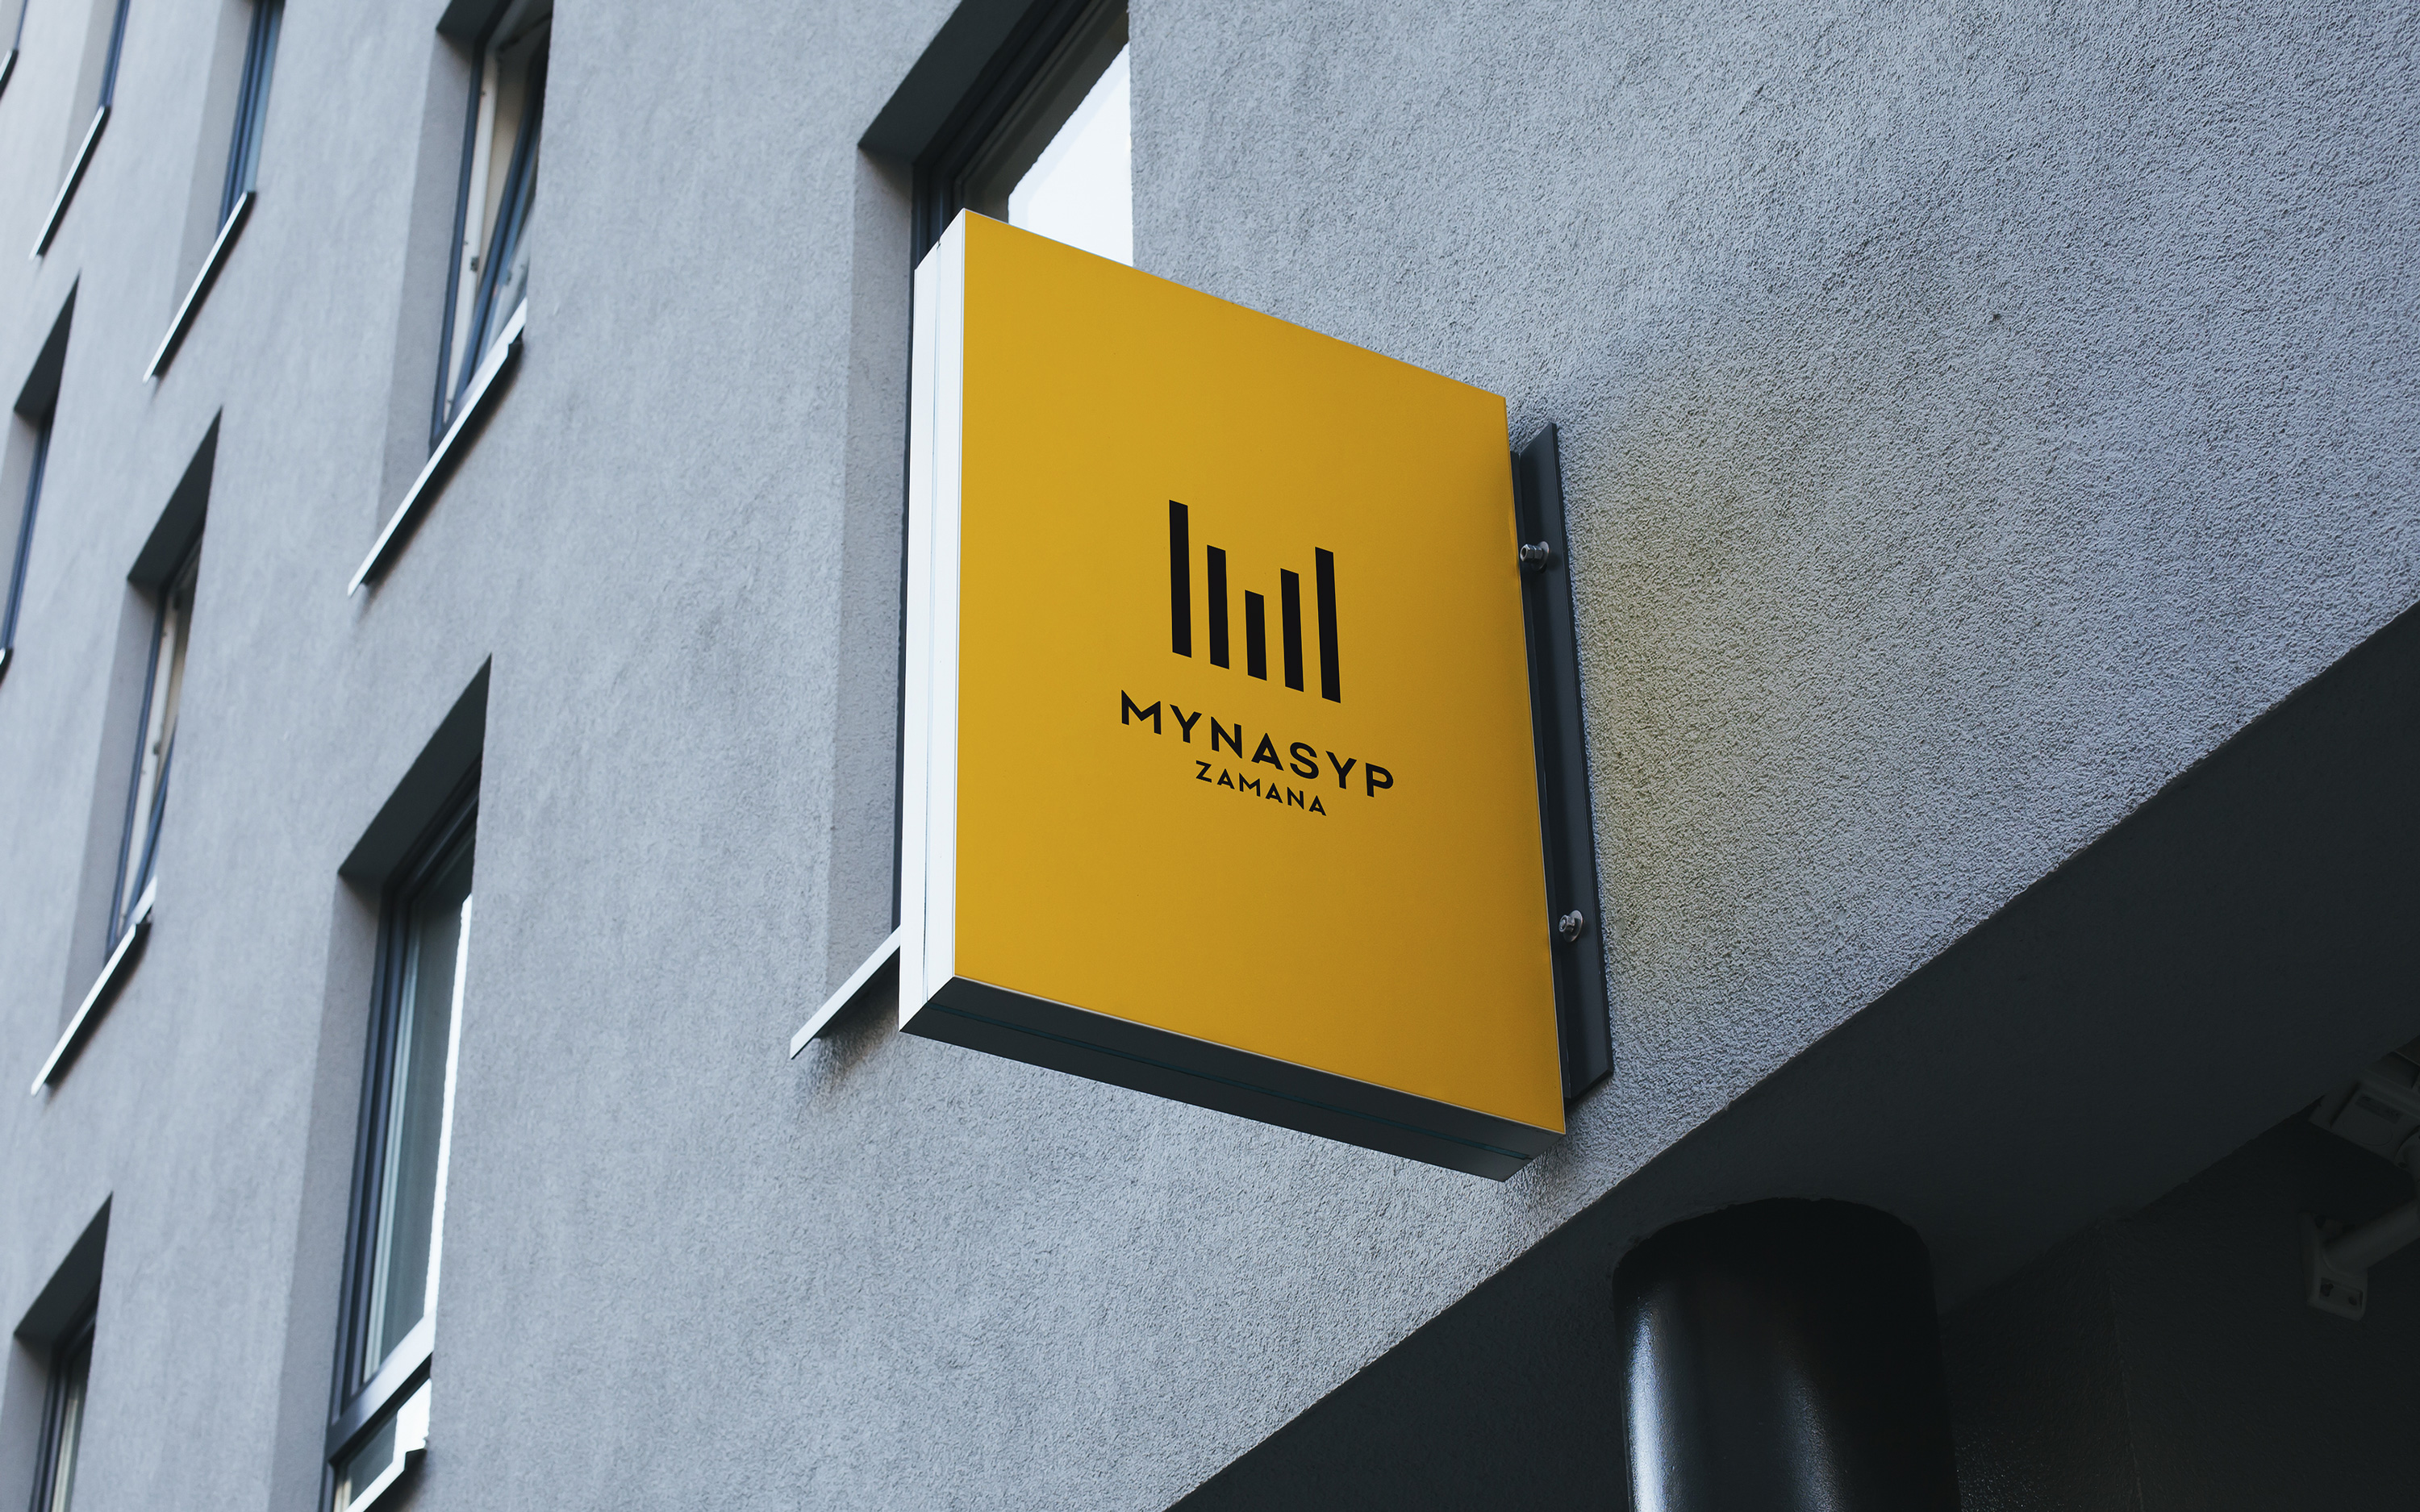 Mynasyp. Brand identity for a construction company